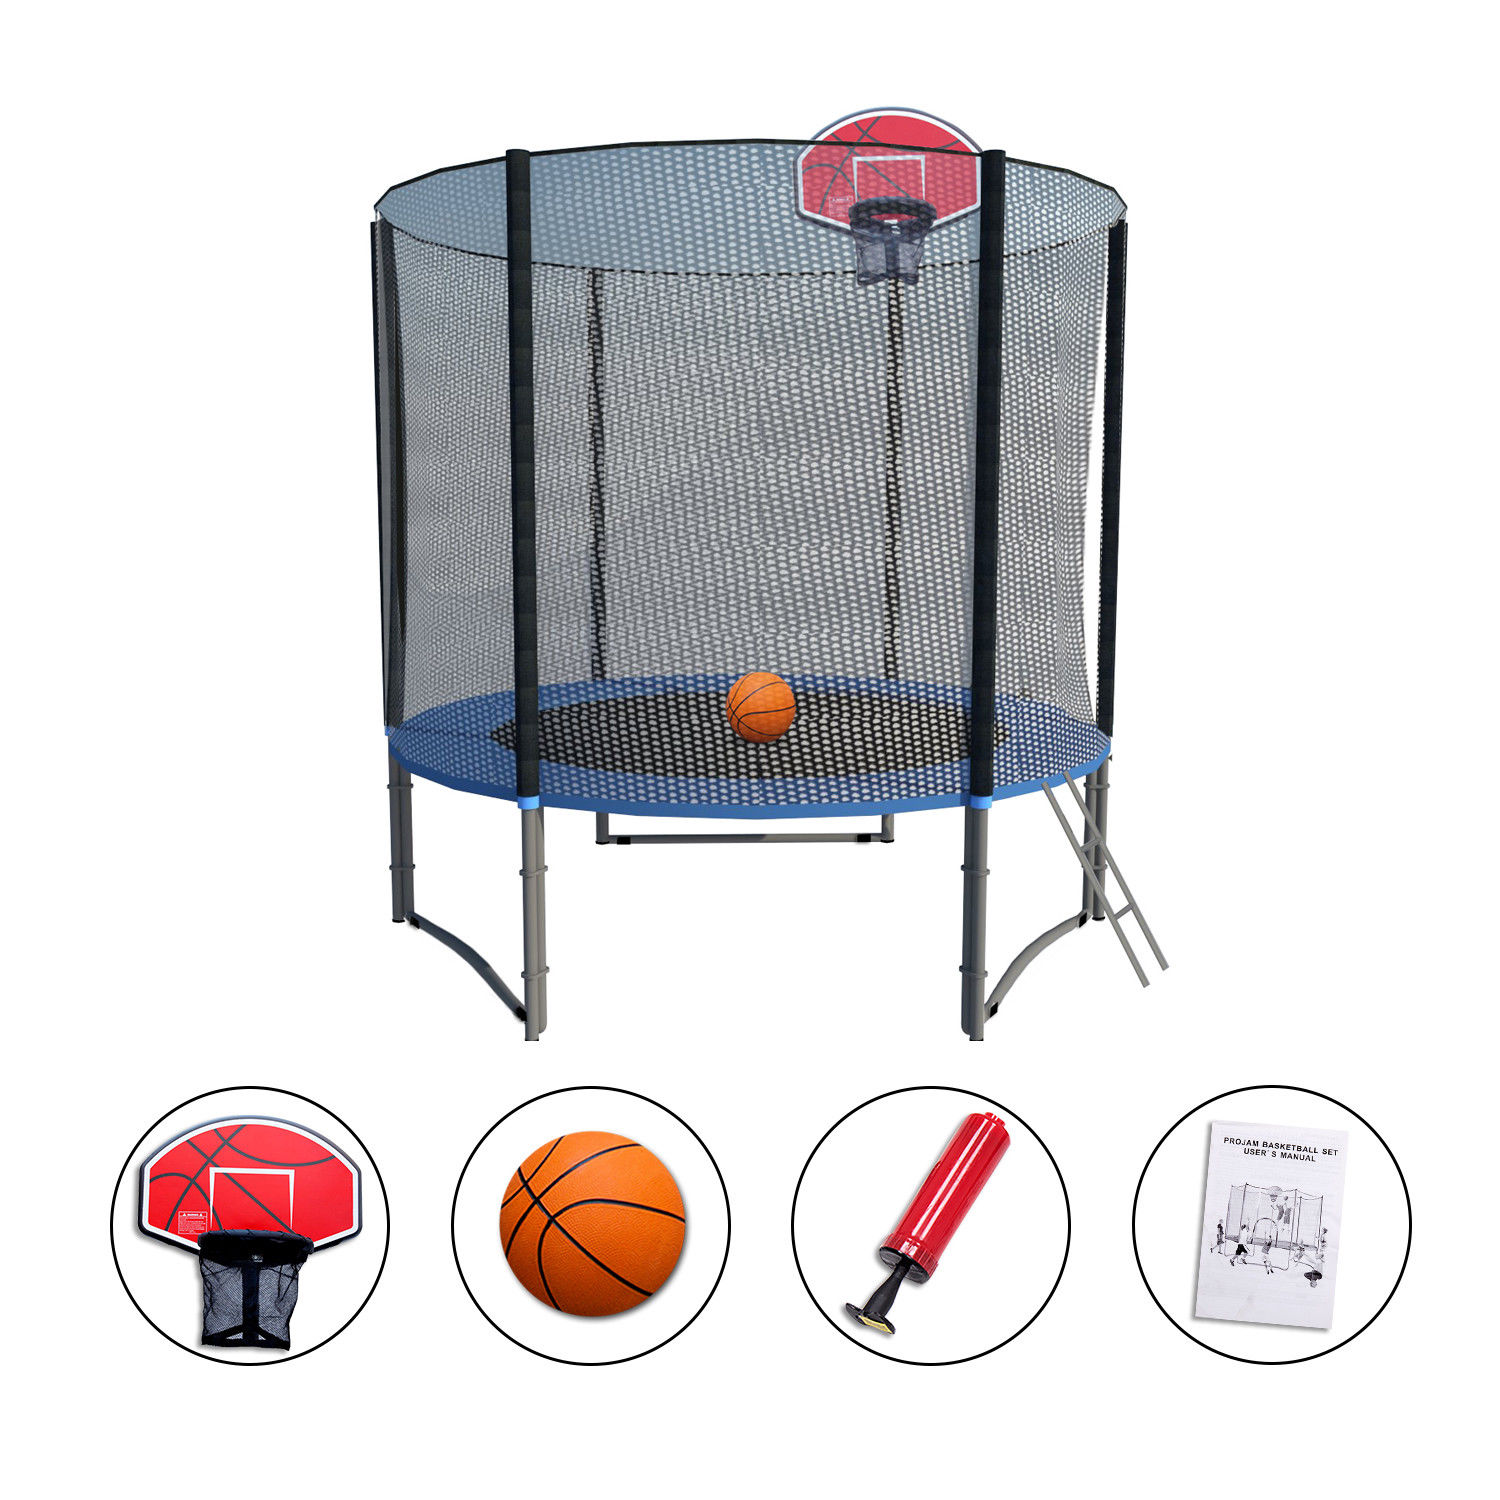 8'-16' Round Trampoline Combo Safety Pad, Enclosure Net